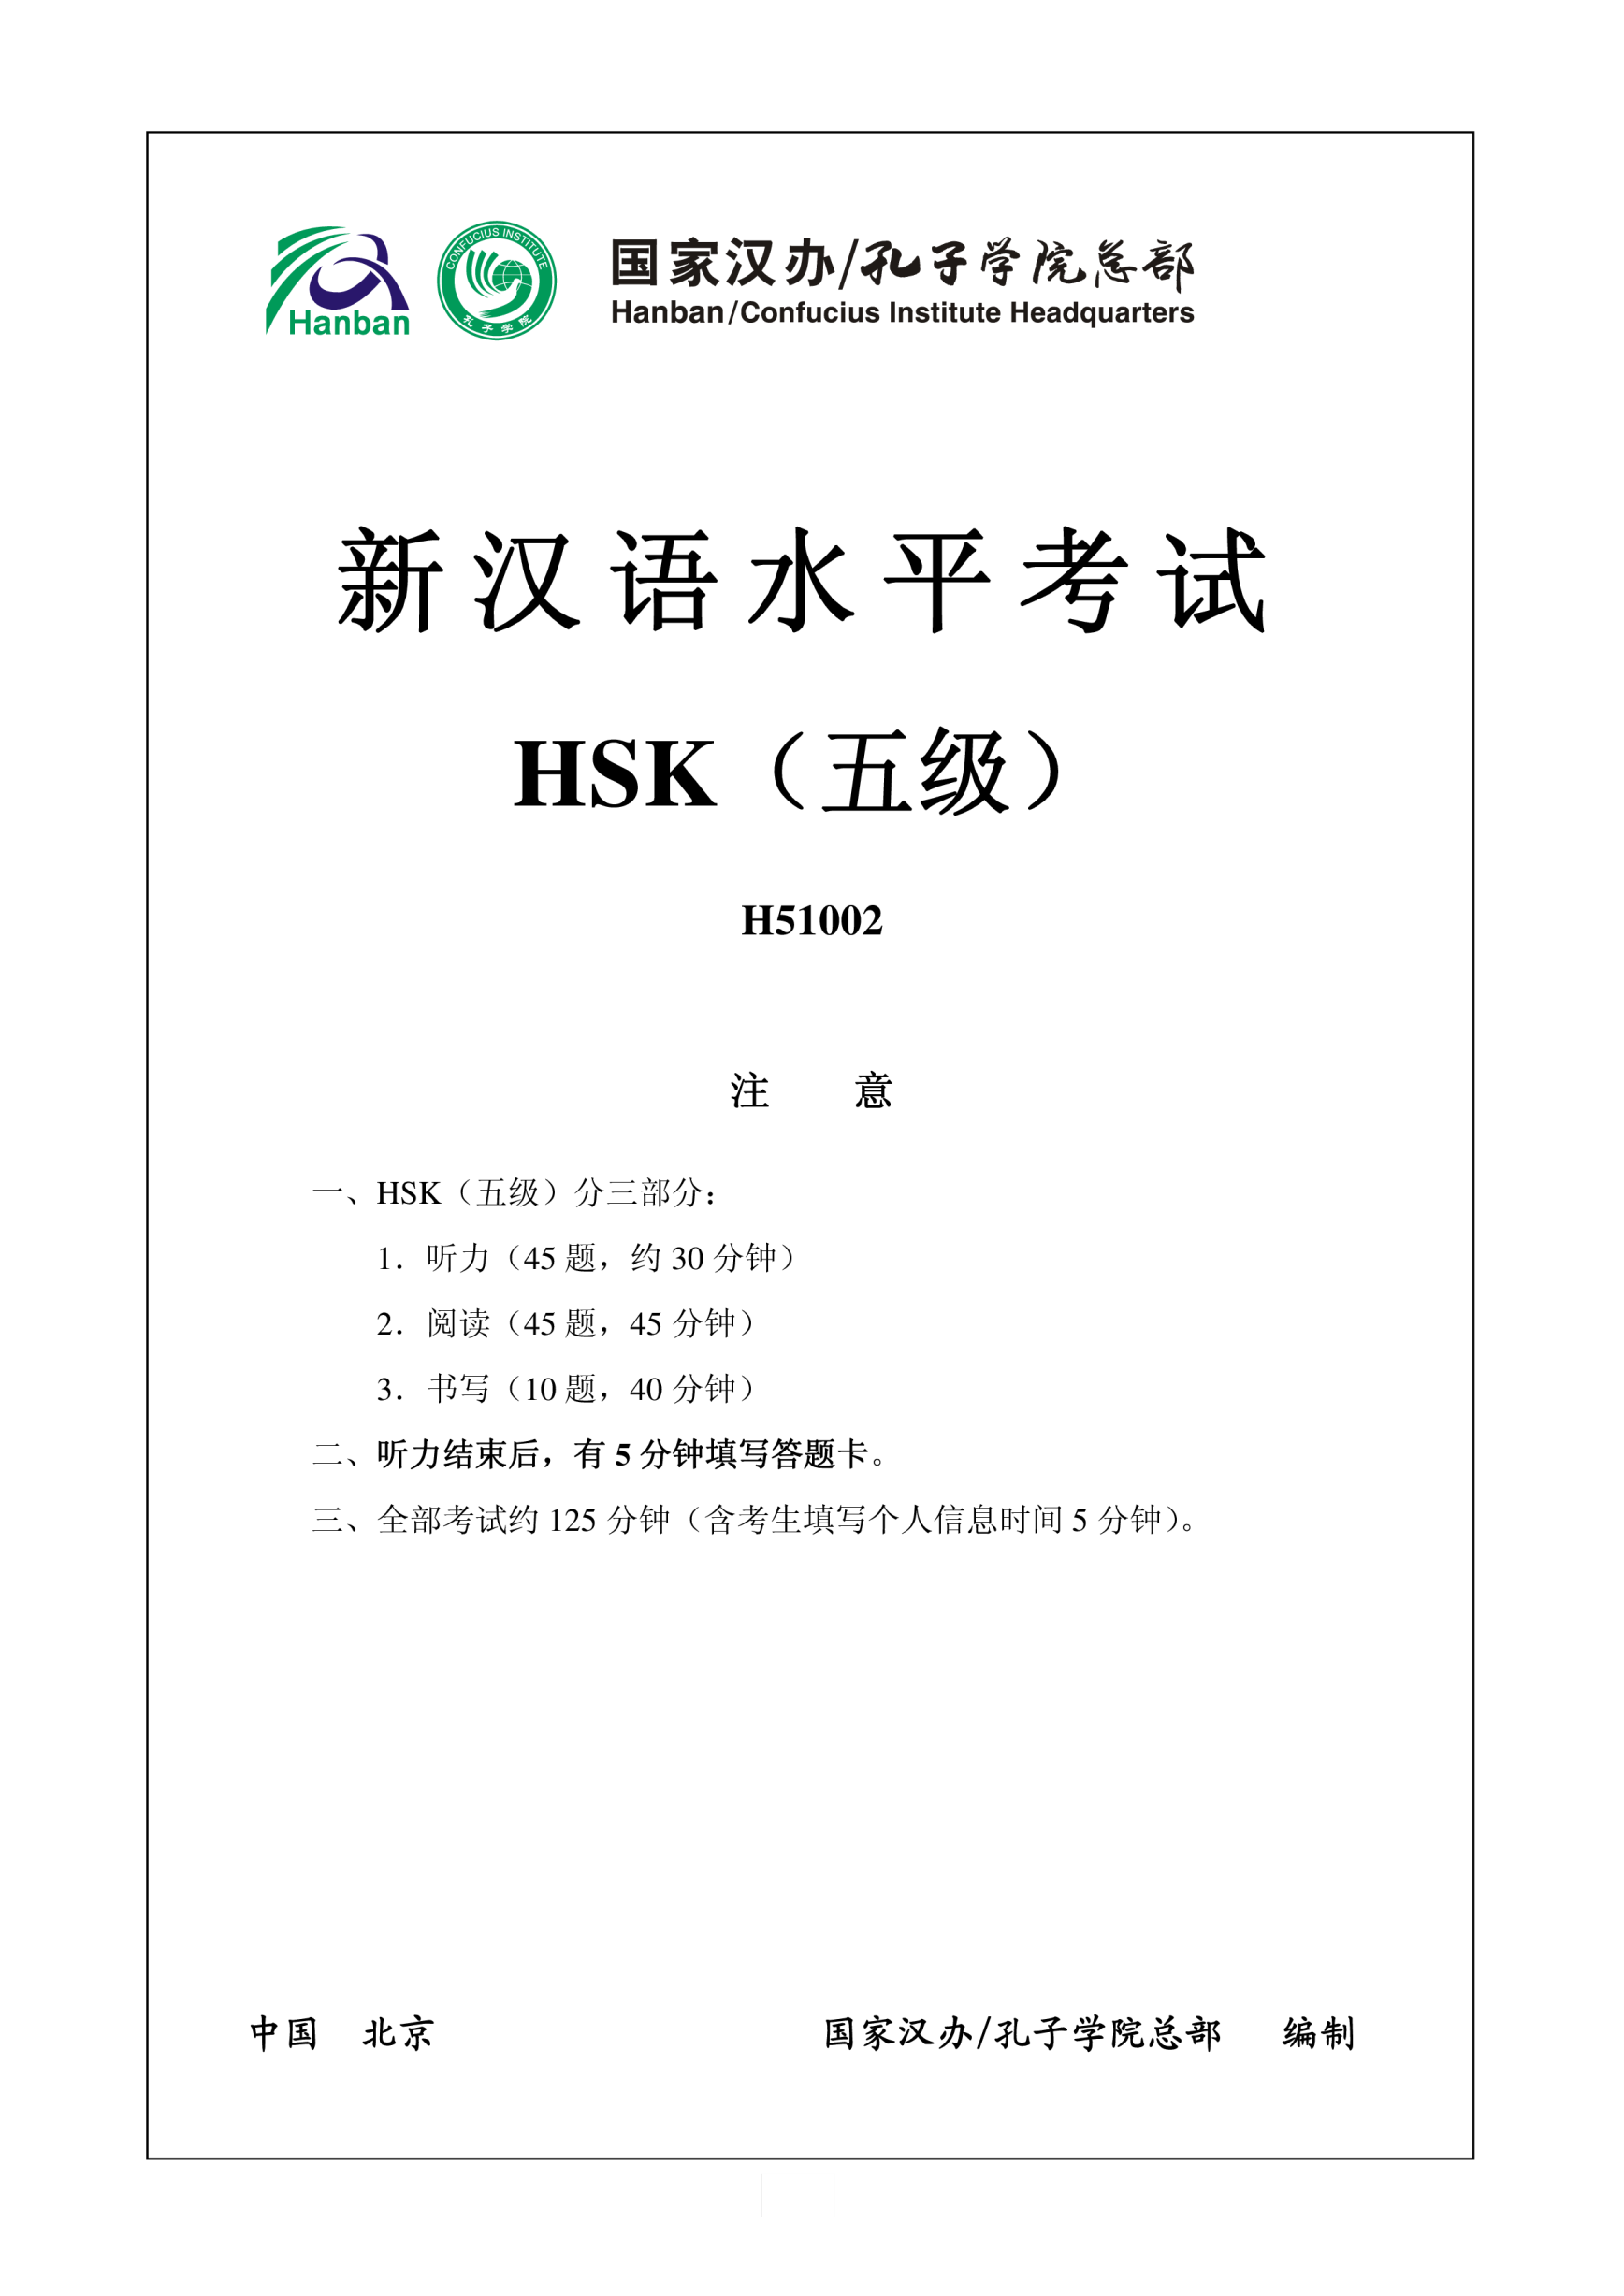 template preview imageHSK5 Chinese Exam, including Audio and Answers HSK5 H51002